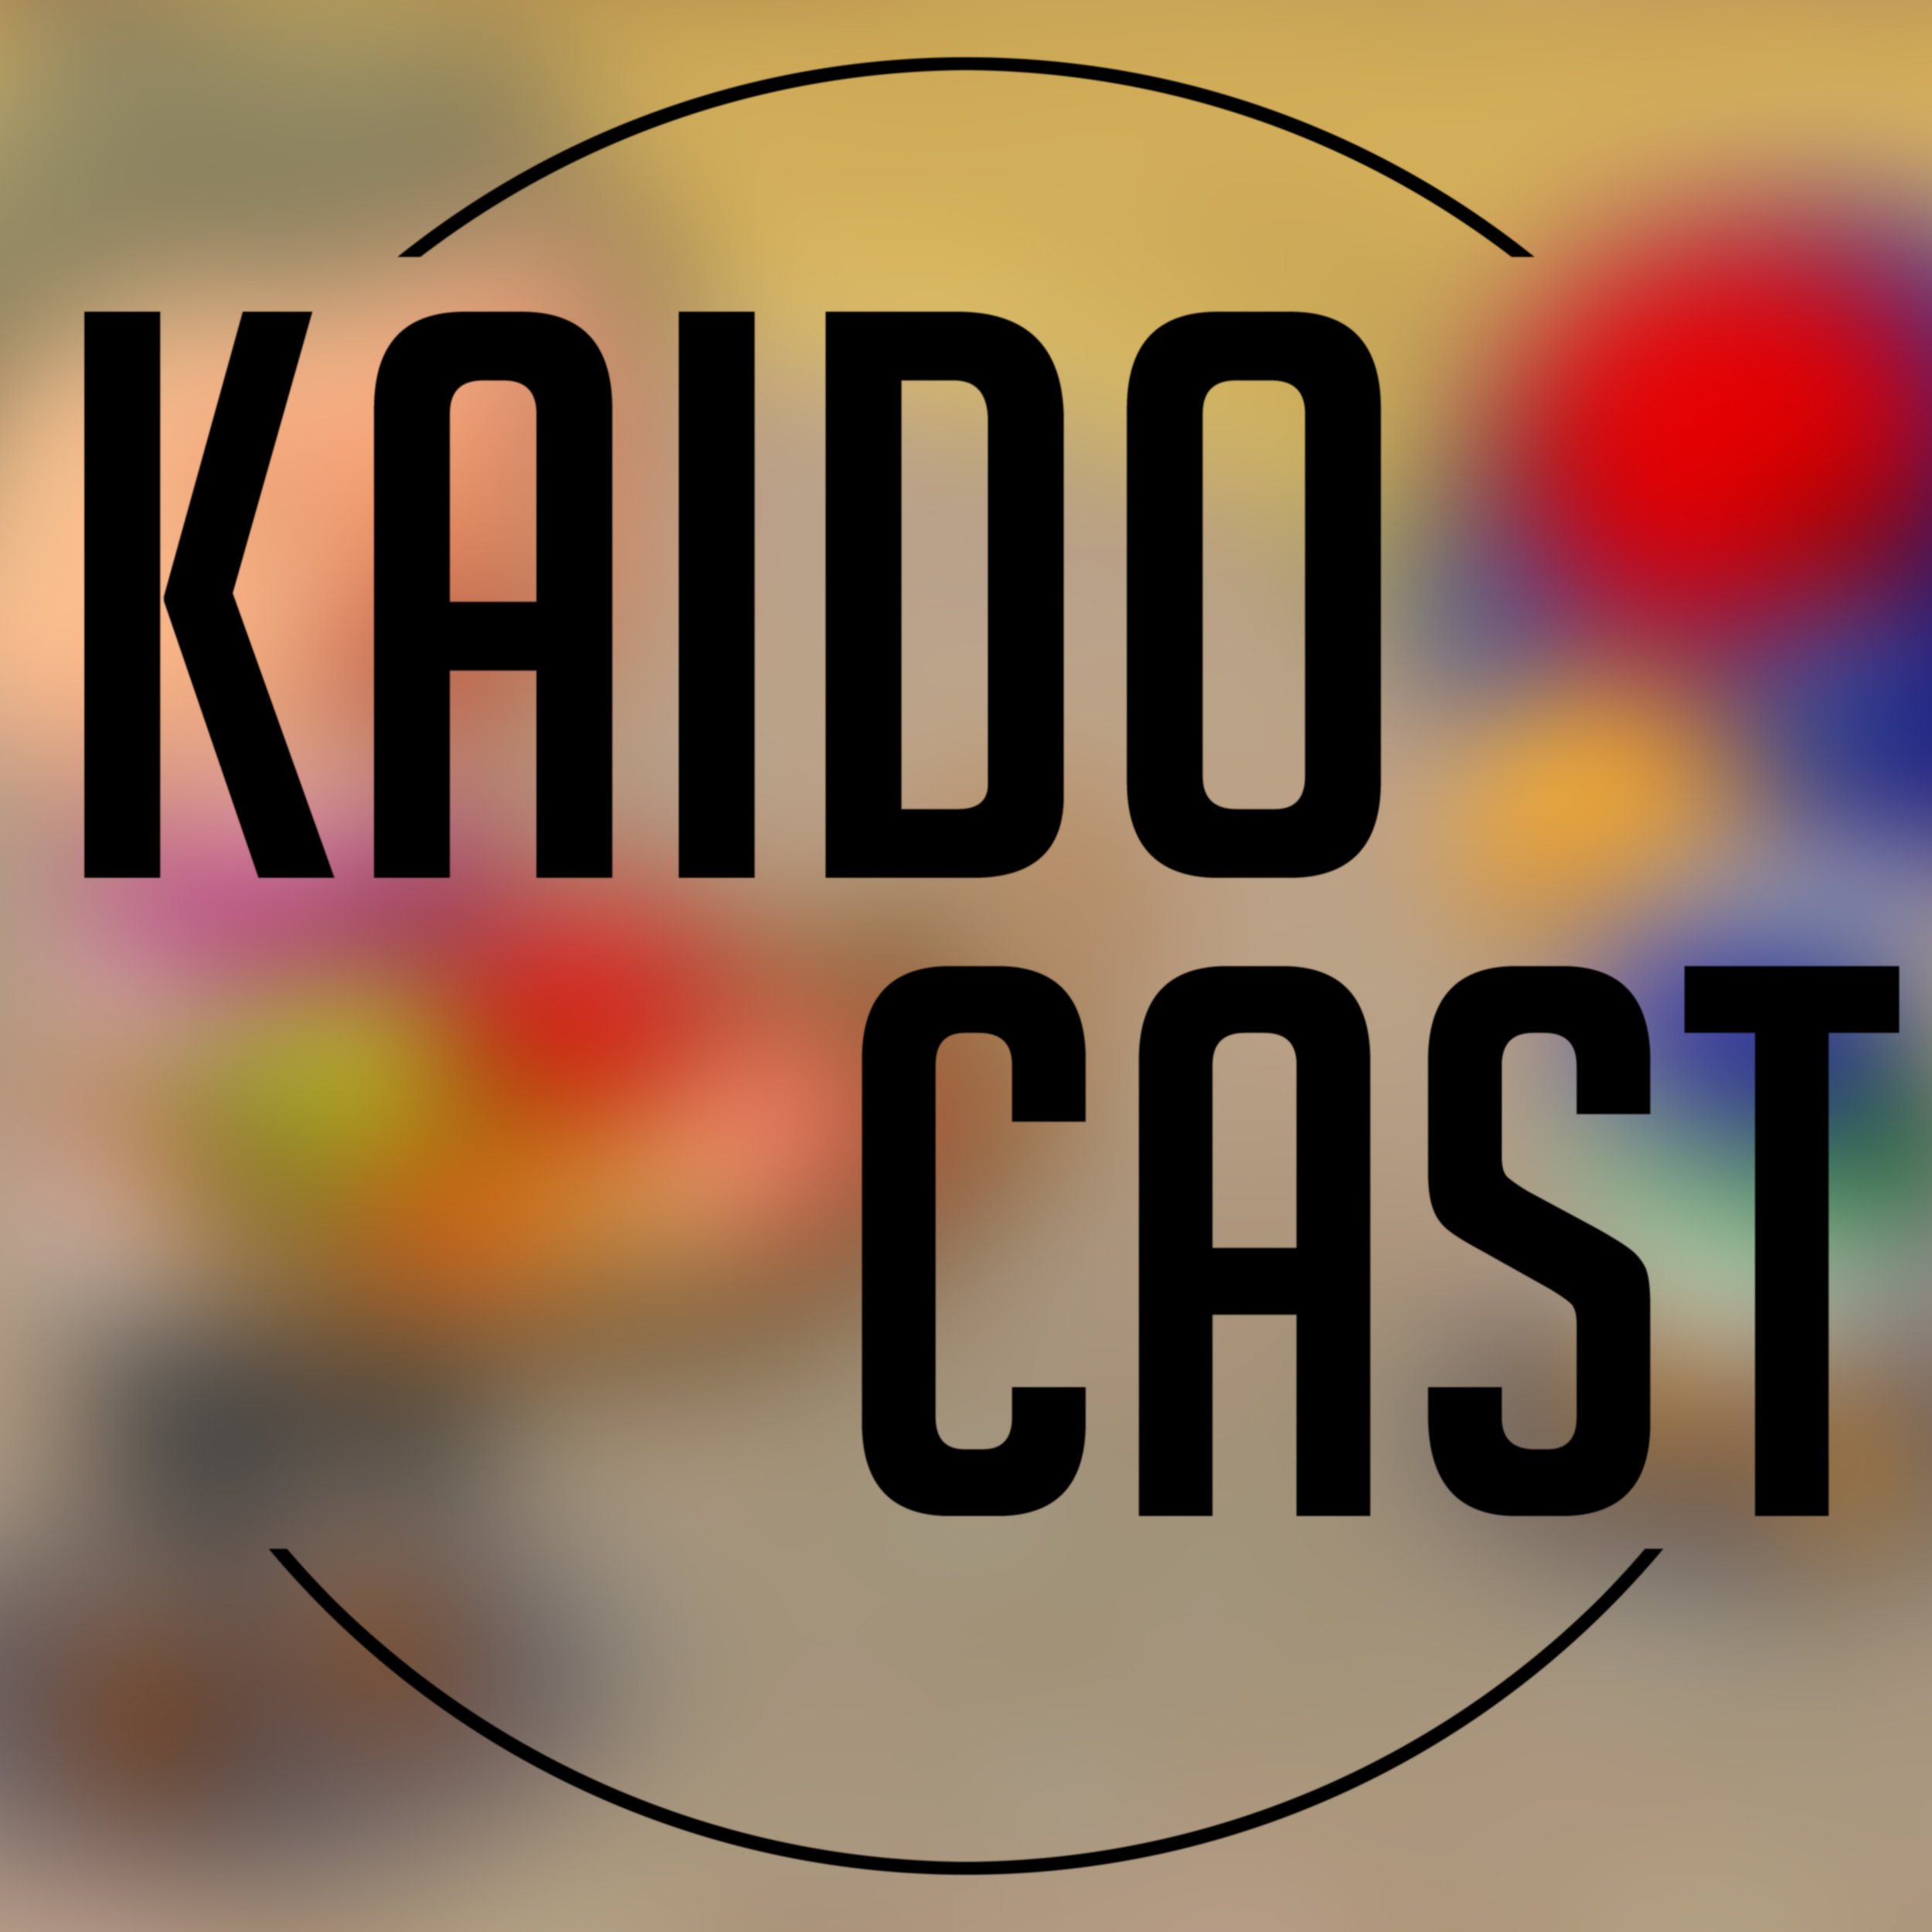 KAIDO Cast 26 - One Way To End a Great Year (2017) - Dave and Zac wrap up a great year of gaming with an extra long episode. Along with some catch-up is a prolonged discussion of their top 5 games of all time.